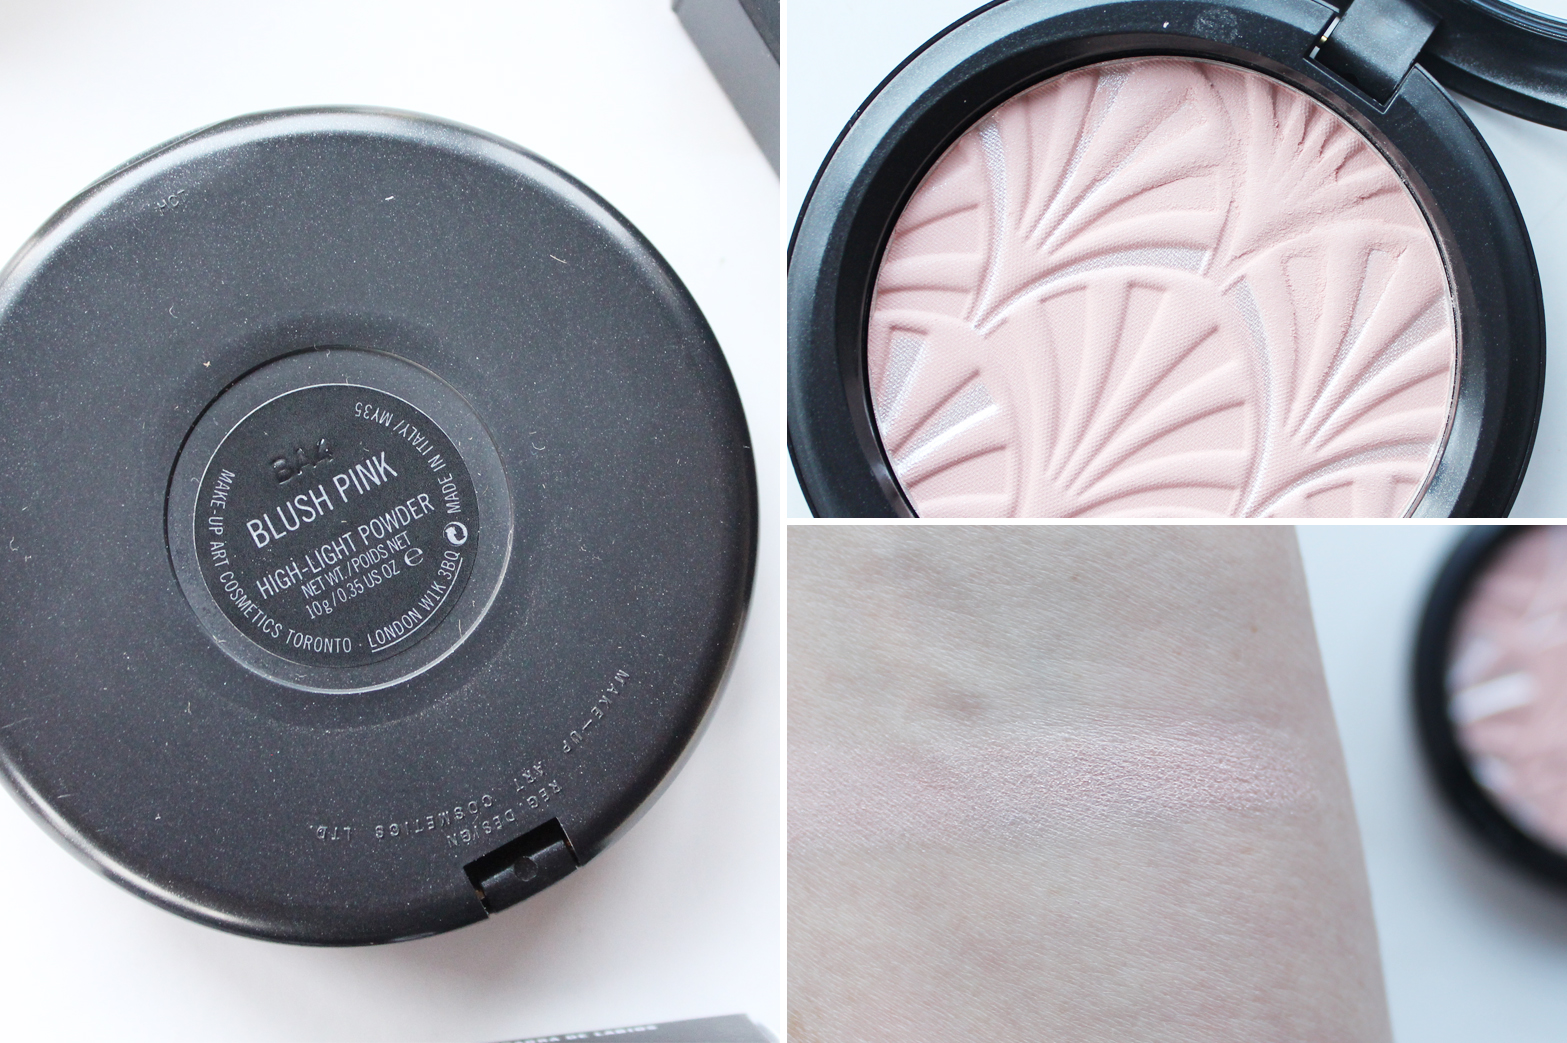 MAC | Haul feat. Philip Treacy + Wash & Dry Collection - Review + Swatches - CassandraMyee